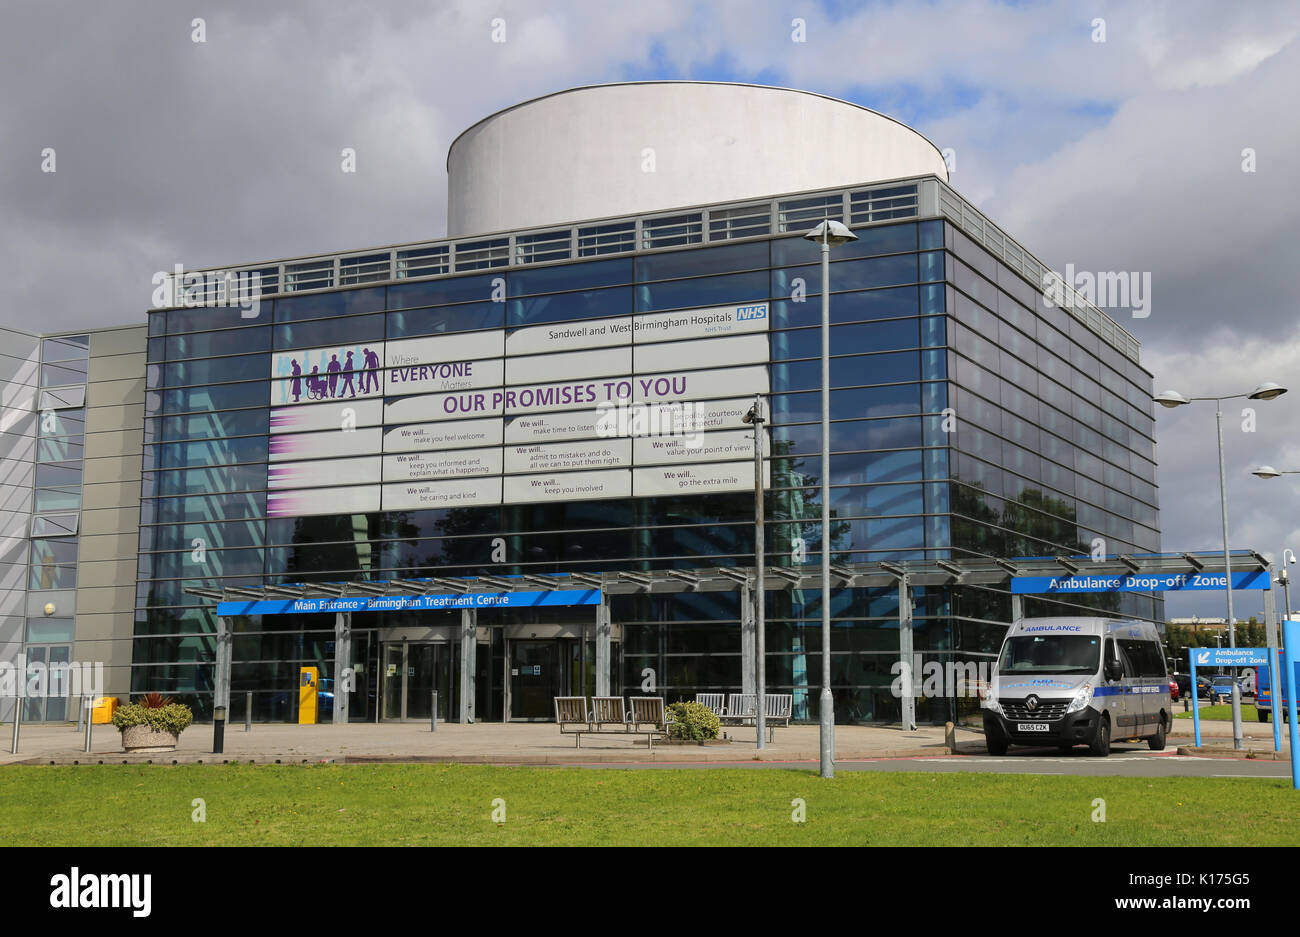 The front of the NHS Birmingham Treatment Centre, part of City Hospital, Dudley Rd, Winson Green, Birmingham. - Stock Image